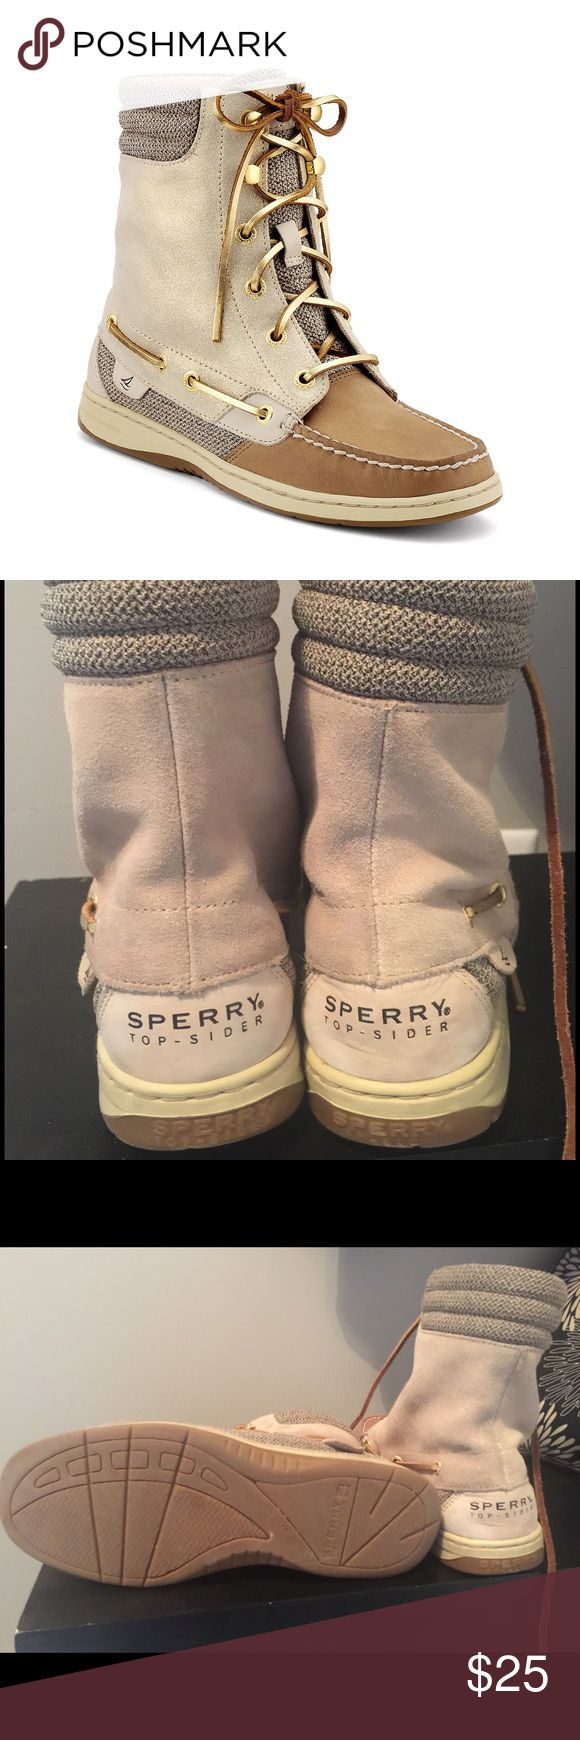 Sperry Top Slider Boots Sperry boots Great condition Sperry Top-Sider Shoes Ankle Boots & Booties